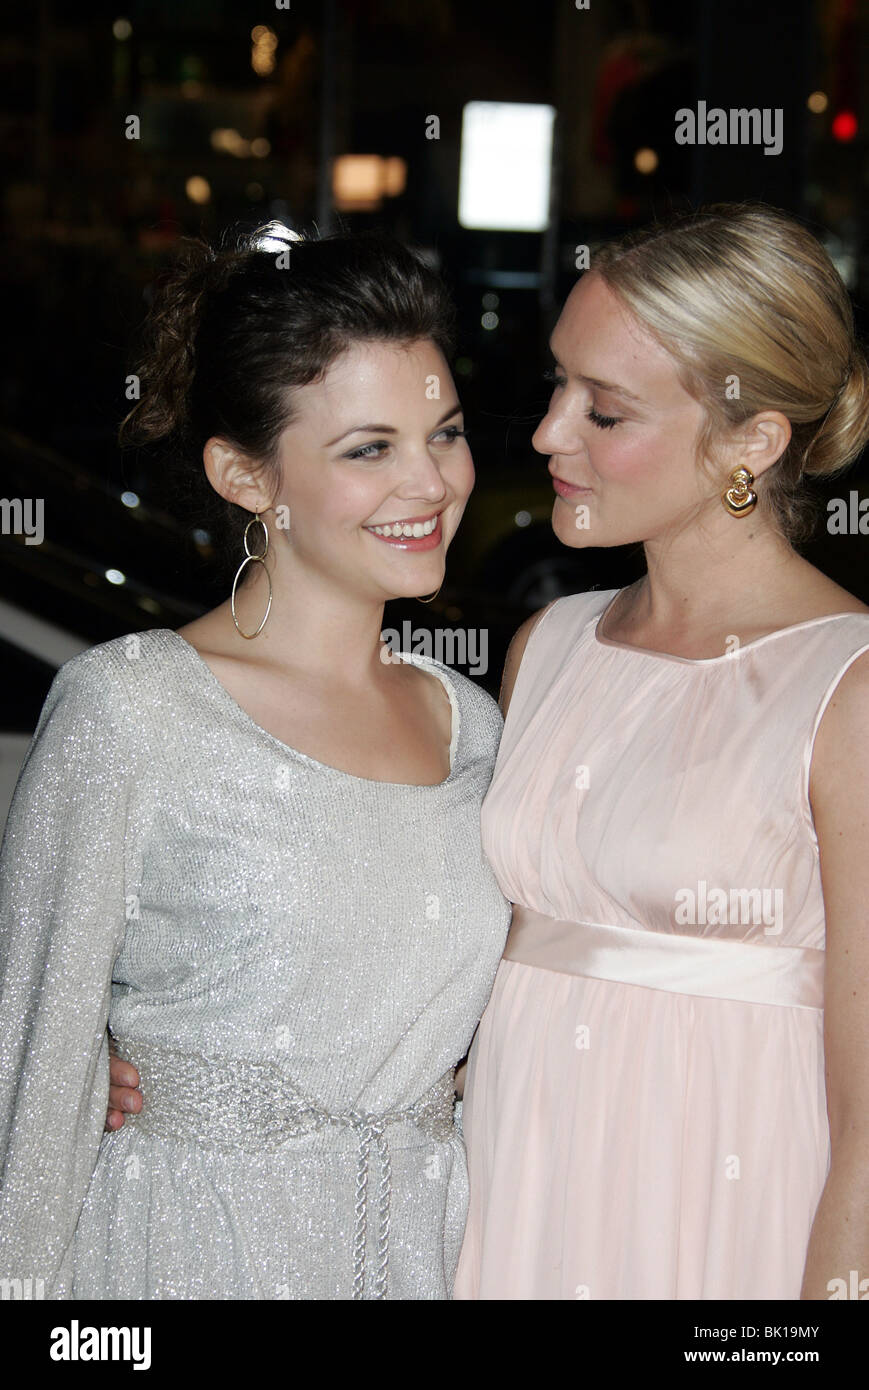 GINNIFER GOODWIN & CHOLE SEVIGNY BIG LOVE HBO TV PREMIERE CHINESE THEATRE HOLLYWOOD LOS ANGELES USA 23 February - Stock Image